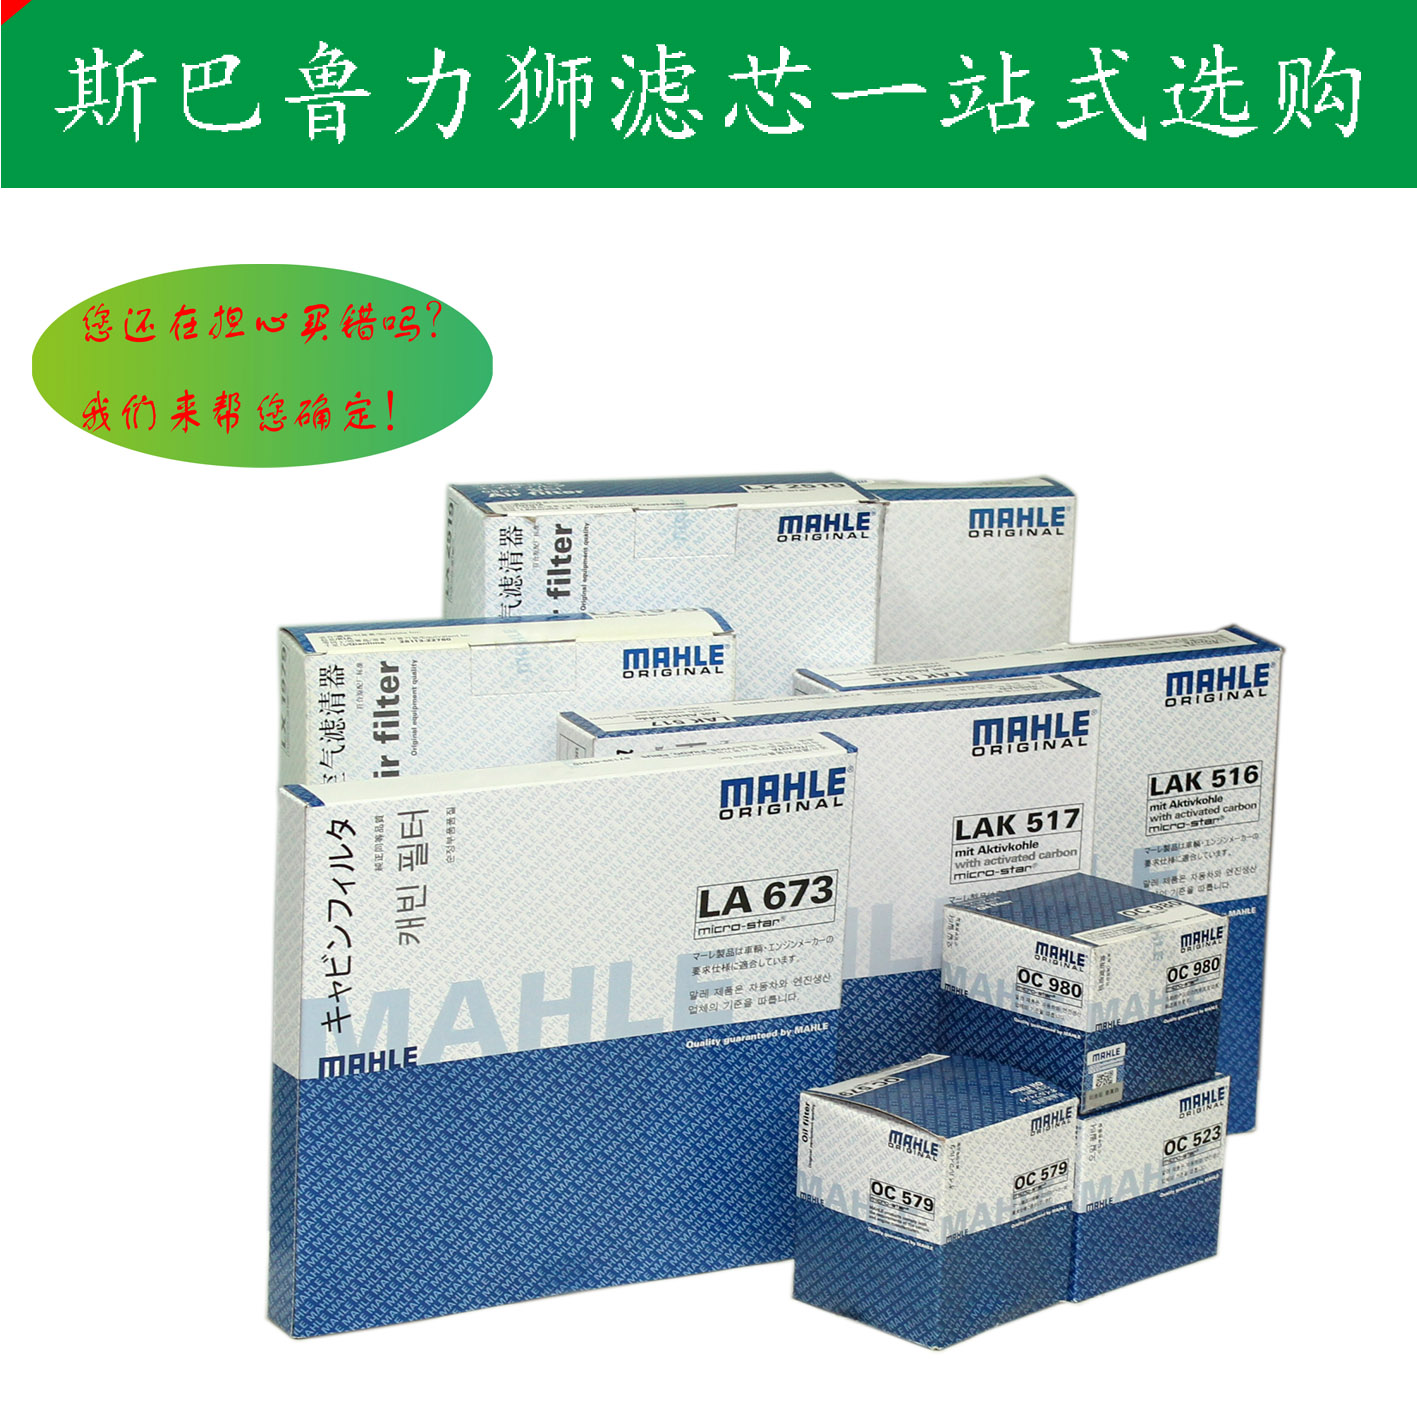 China Subaru Fuel Filter Shopping Guide At Legacy Location Get Quotations Mahle Oil Air Grid Three Four Car Maintenance